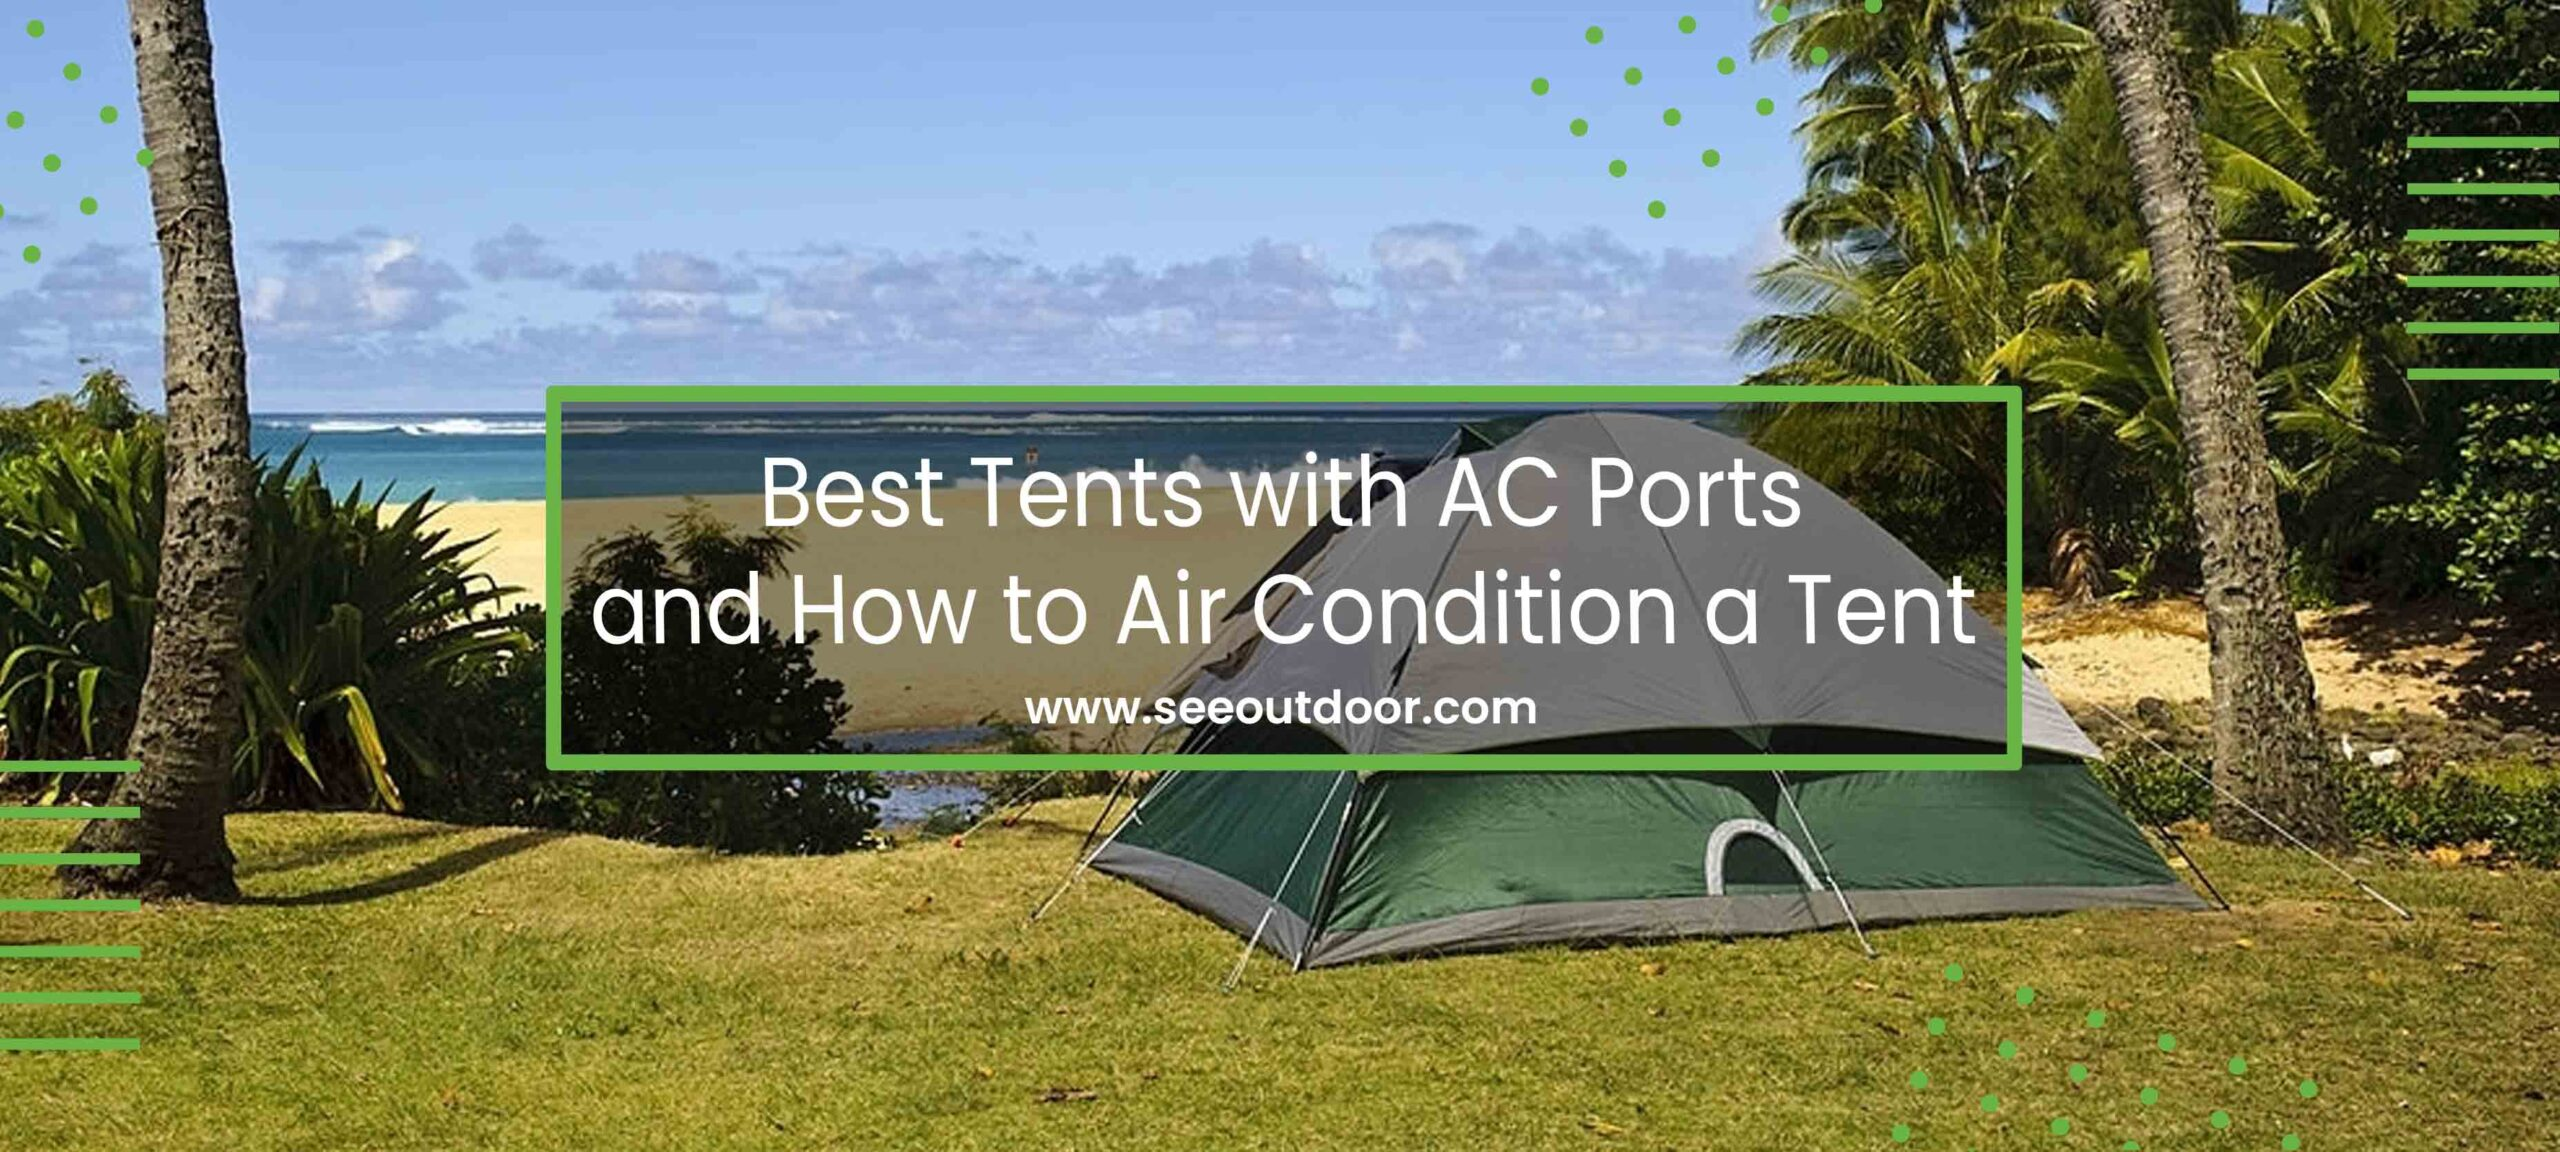 Tent with ac port